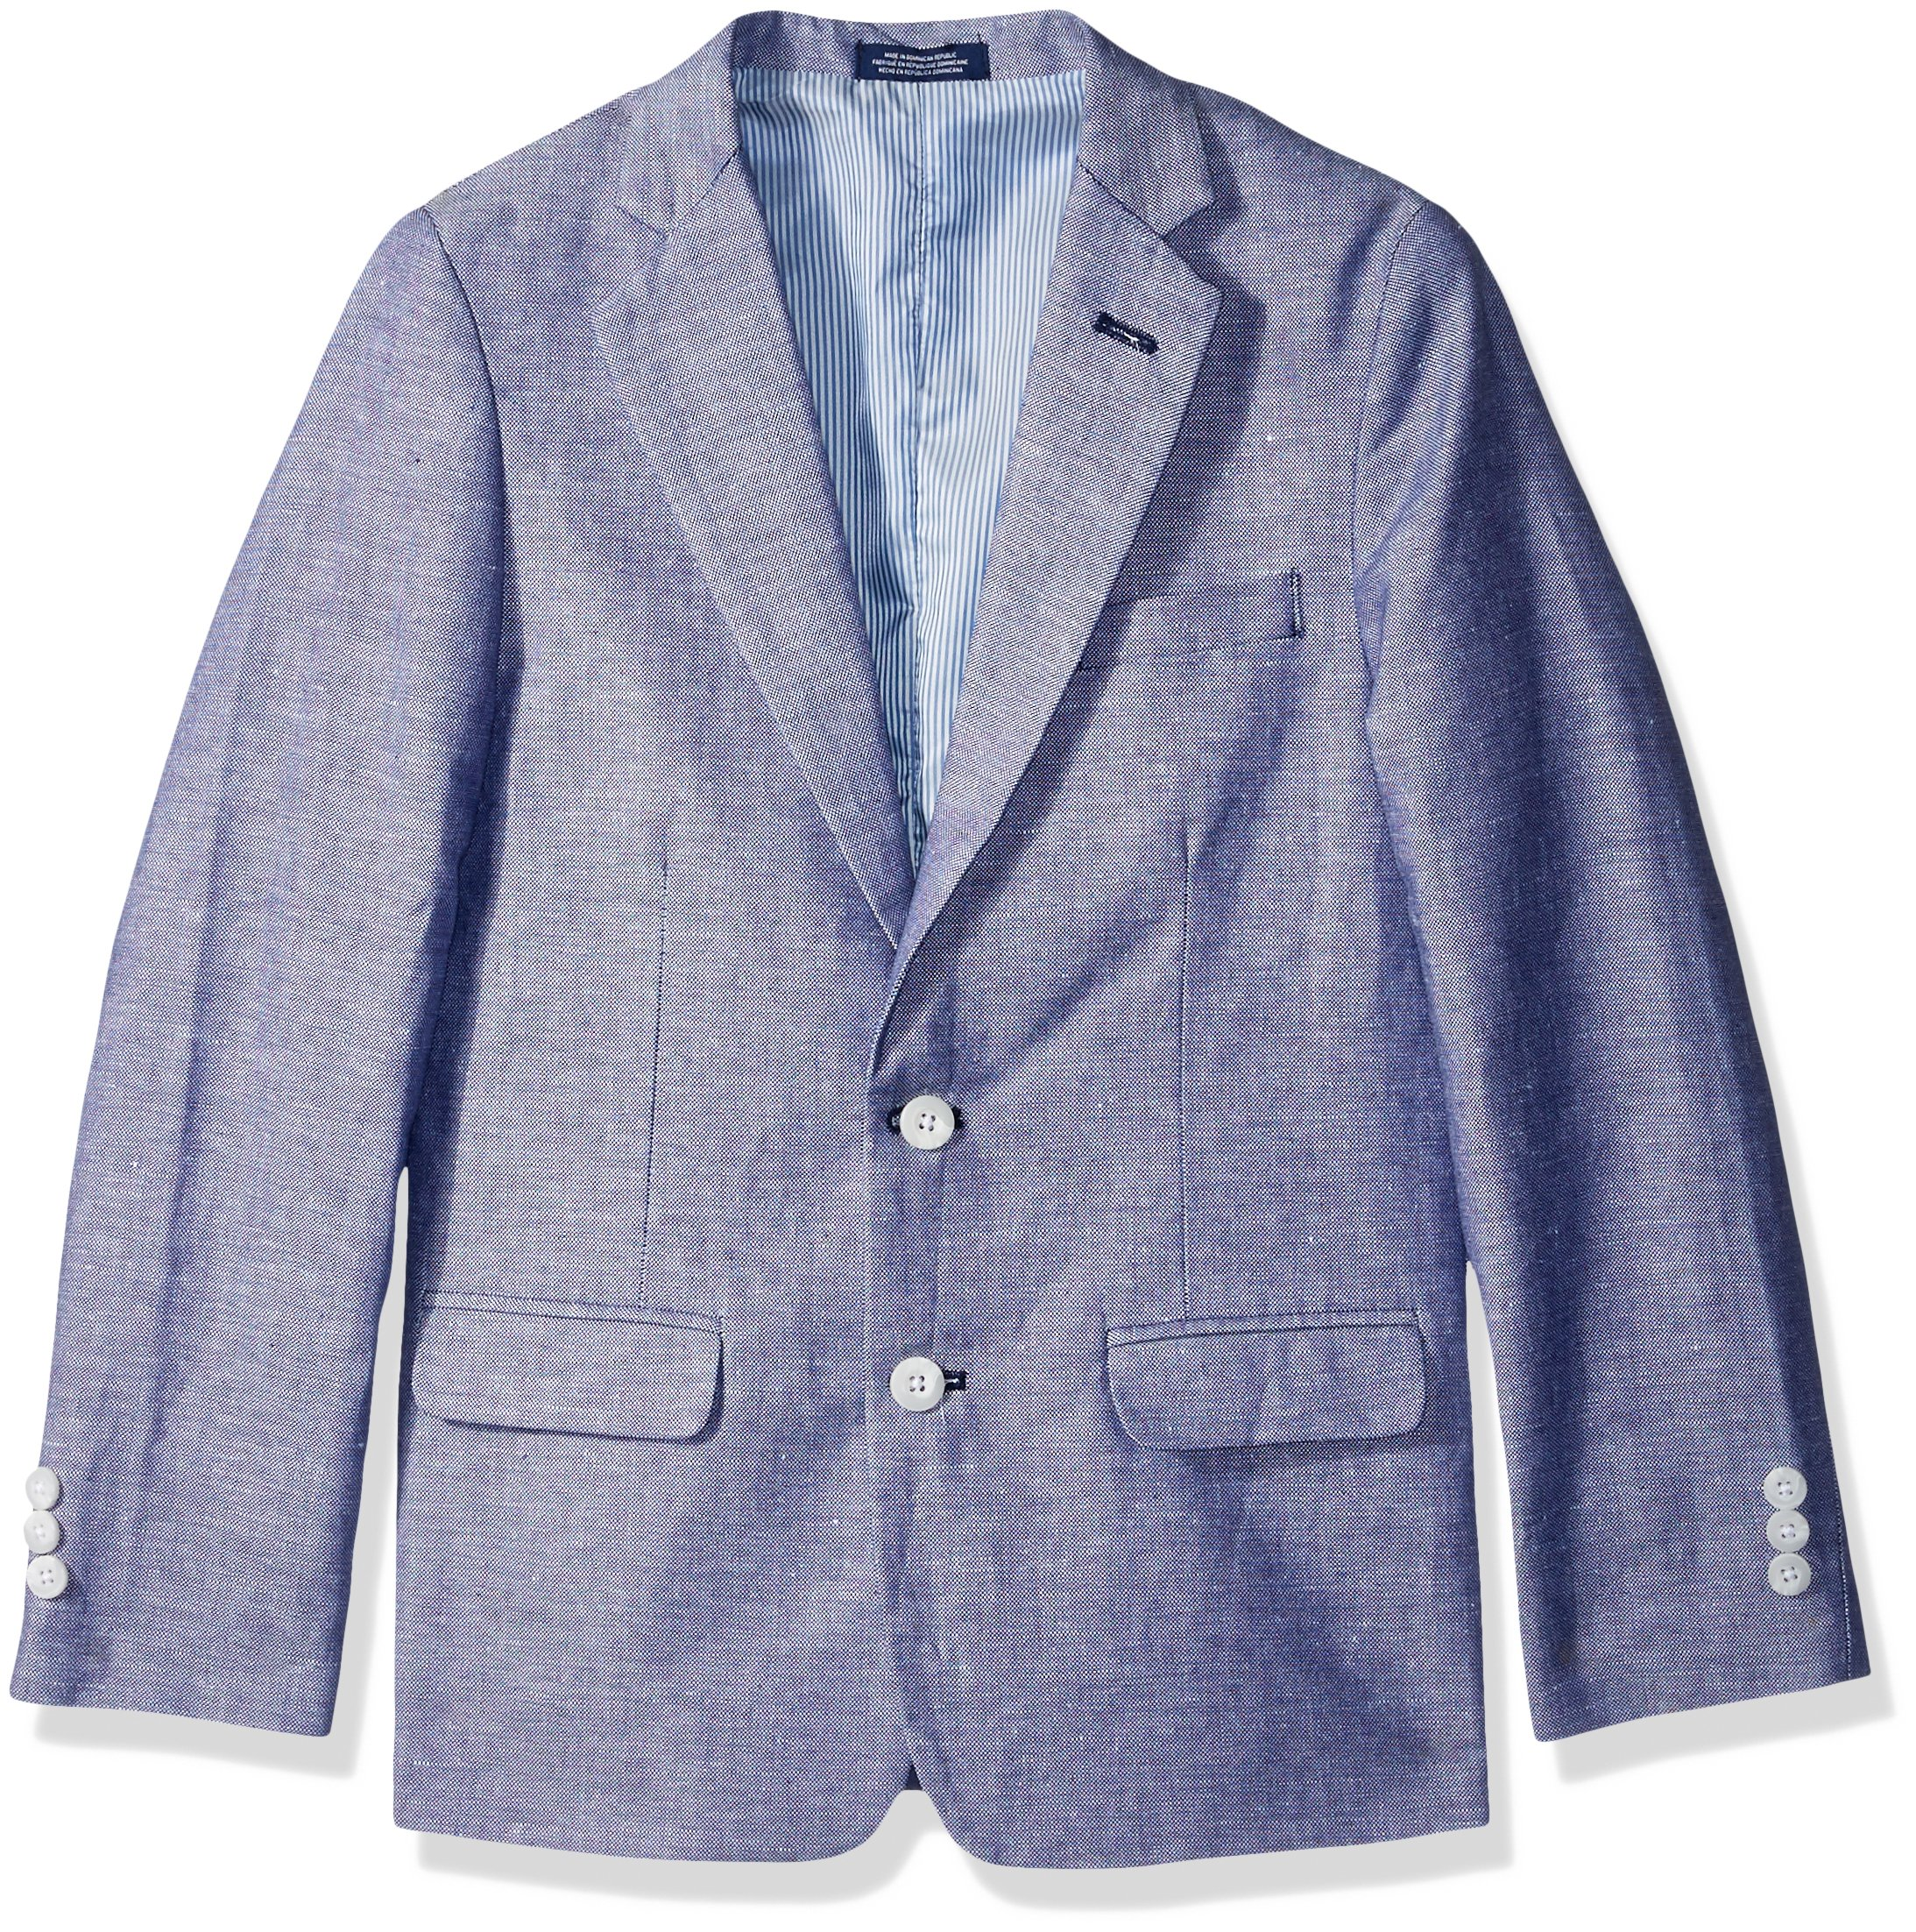 IZOD Big Boys' Blazer Suit Jacket, Dark Blue, 12